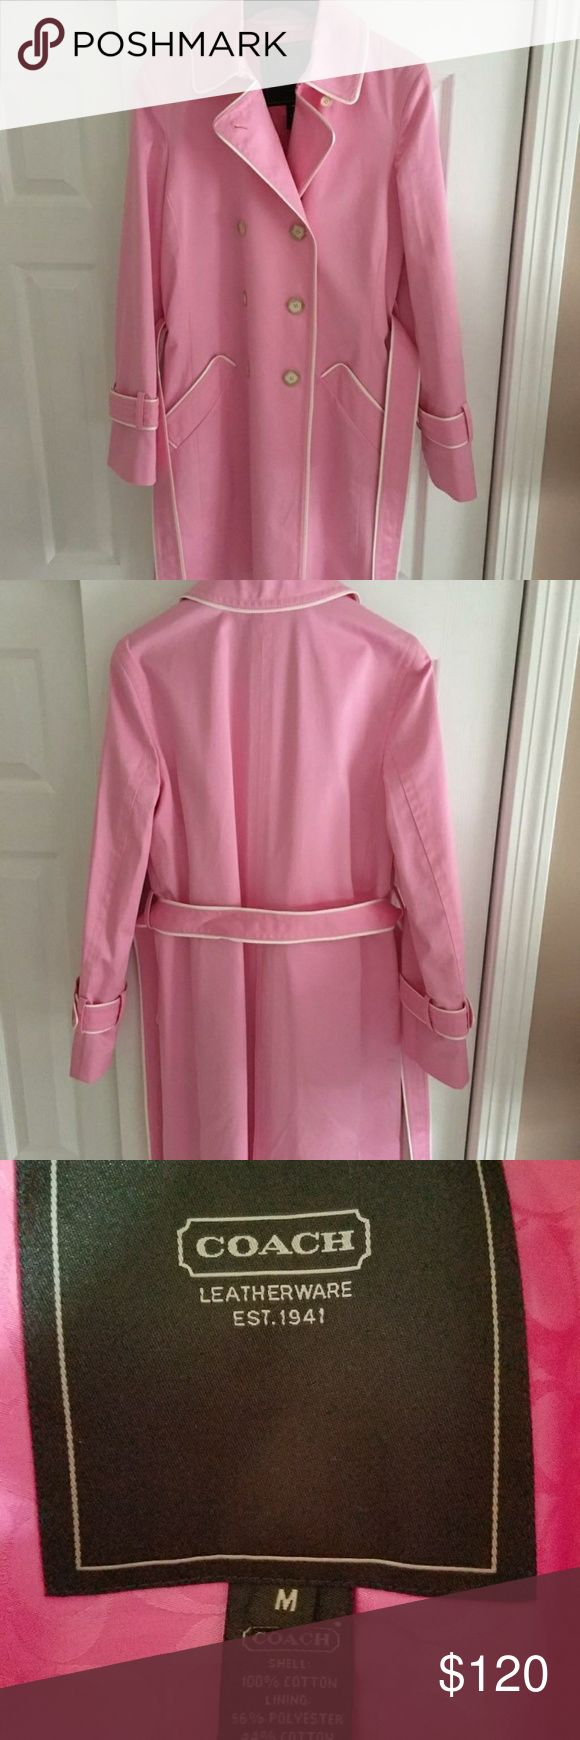 Double Breasted Pink Trench Coat Beautiful jacket in excellent condition. Worn once and has been hanging in the closet. Attached are extra buttons. Open to offers. Coach Jackets & Coats Trench Coats